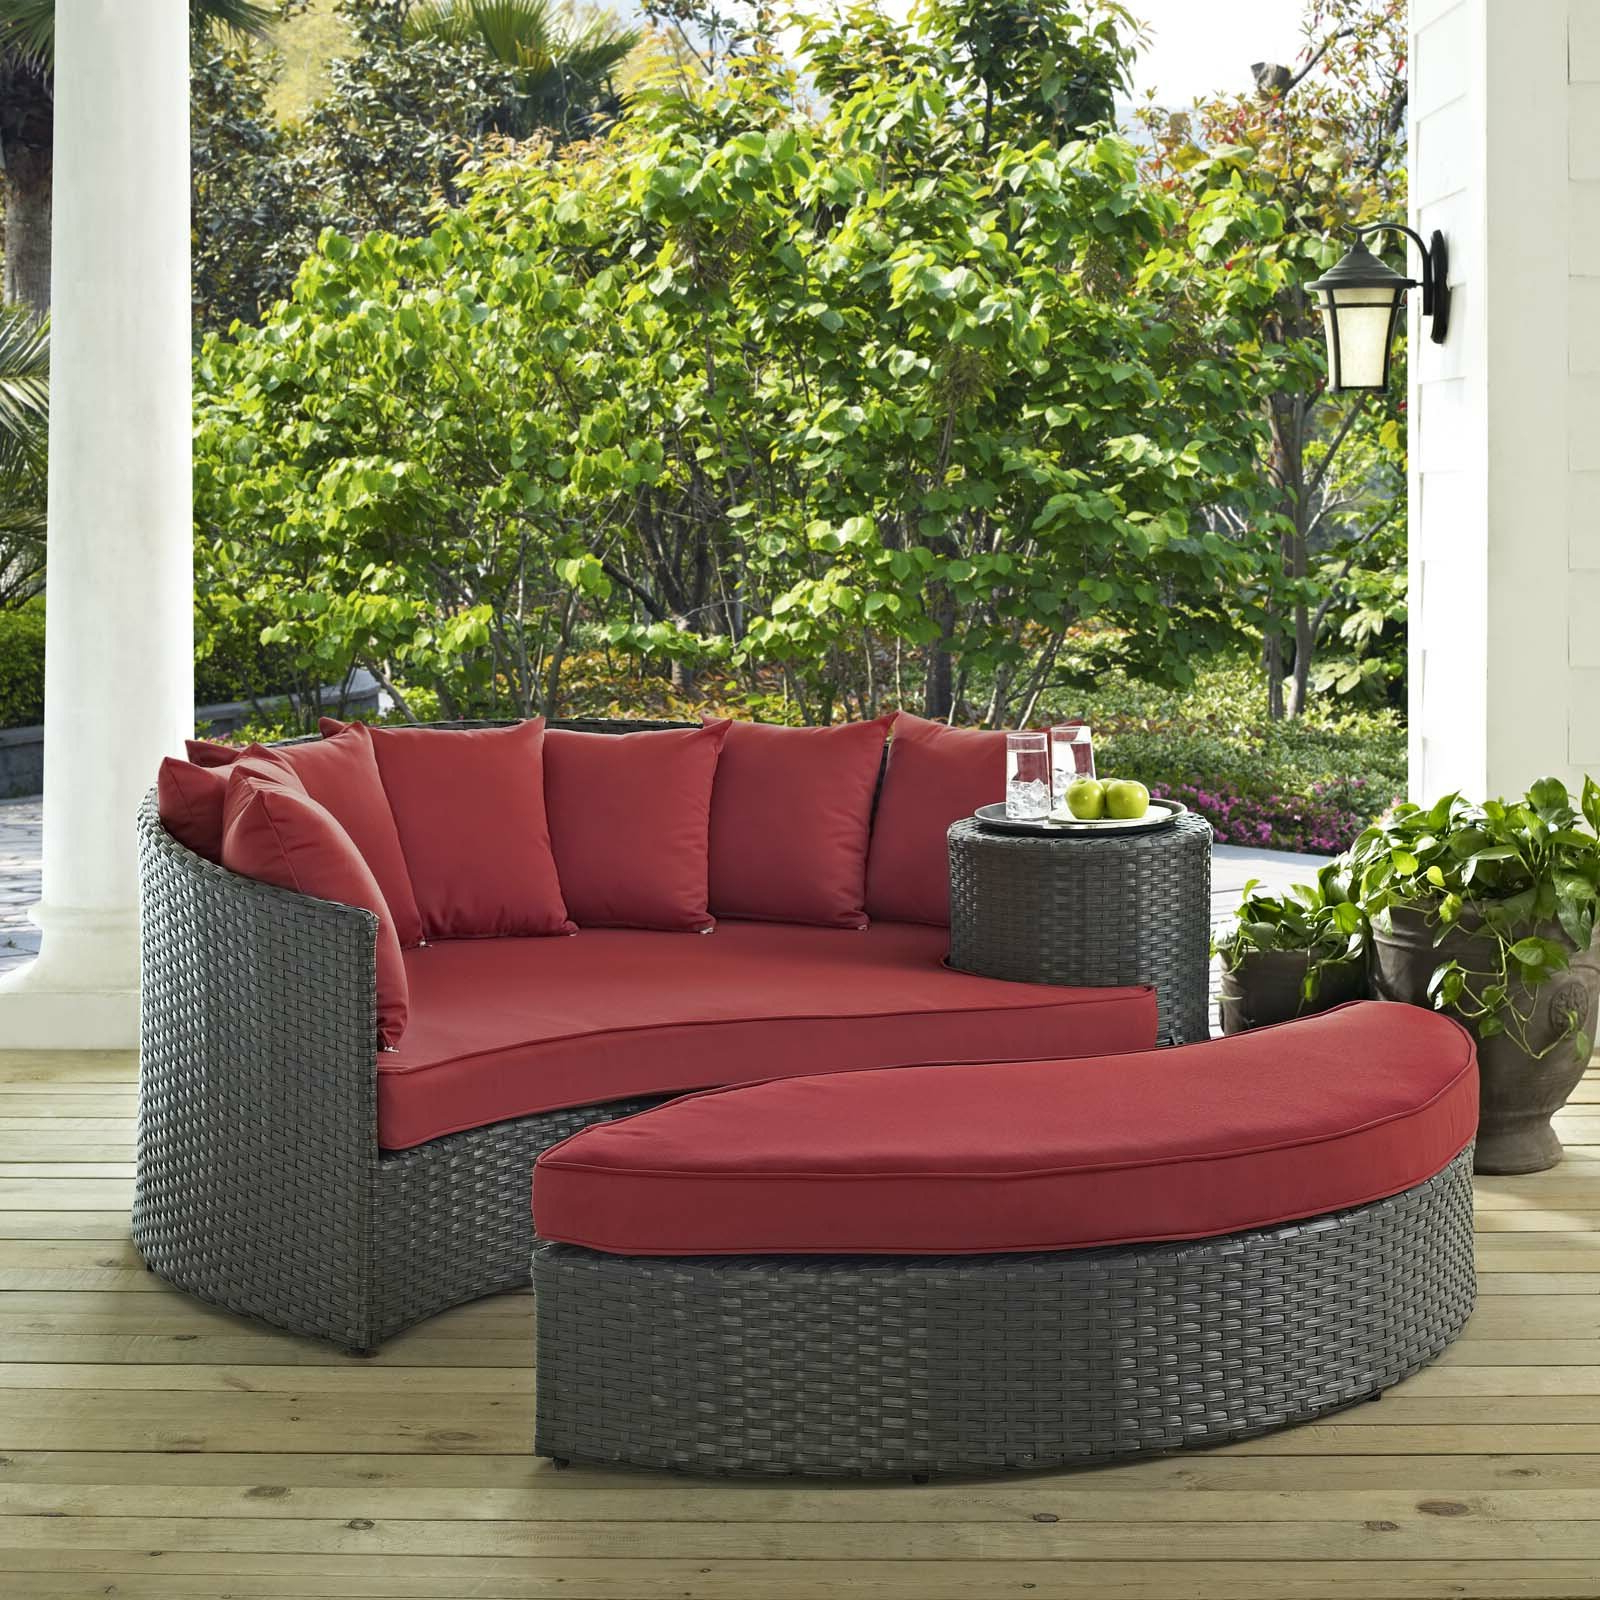 Lavina Outdoor Patio Daybeds With Cushions With Trendy Tripp Patio Daybed With Cushions (View 13 of 20)